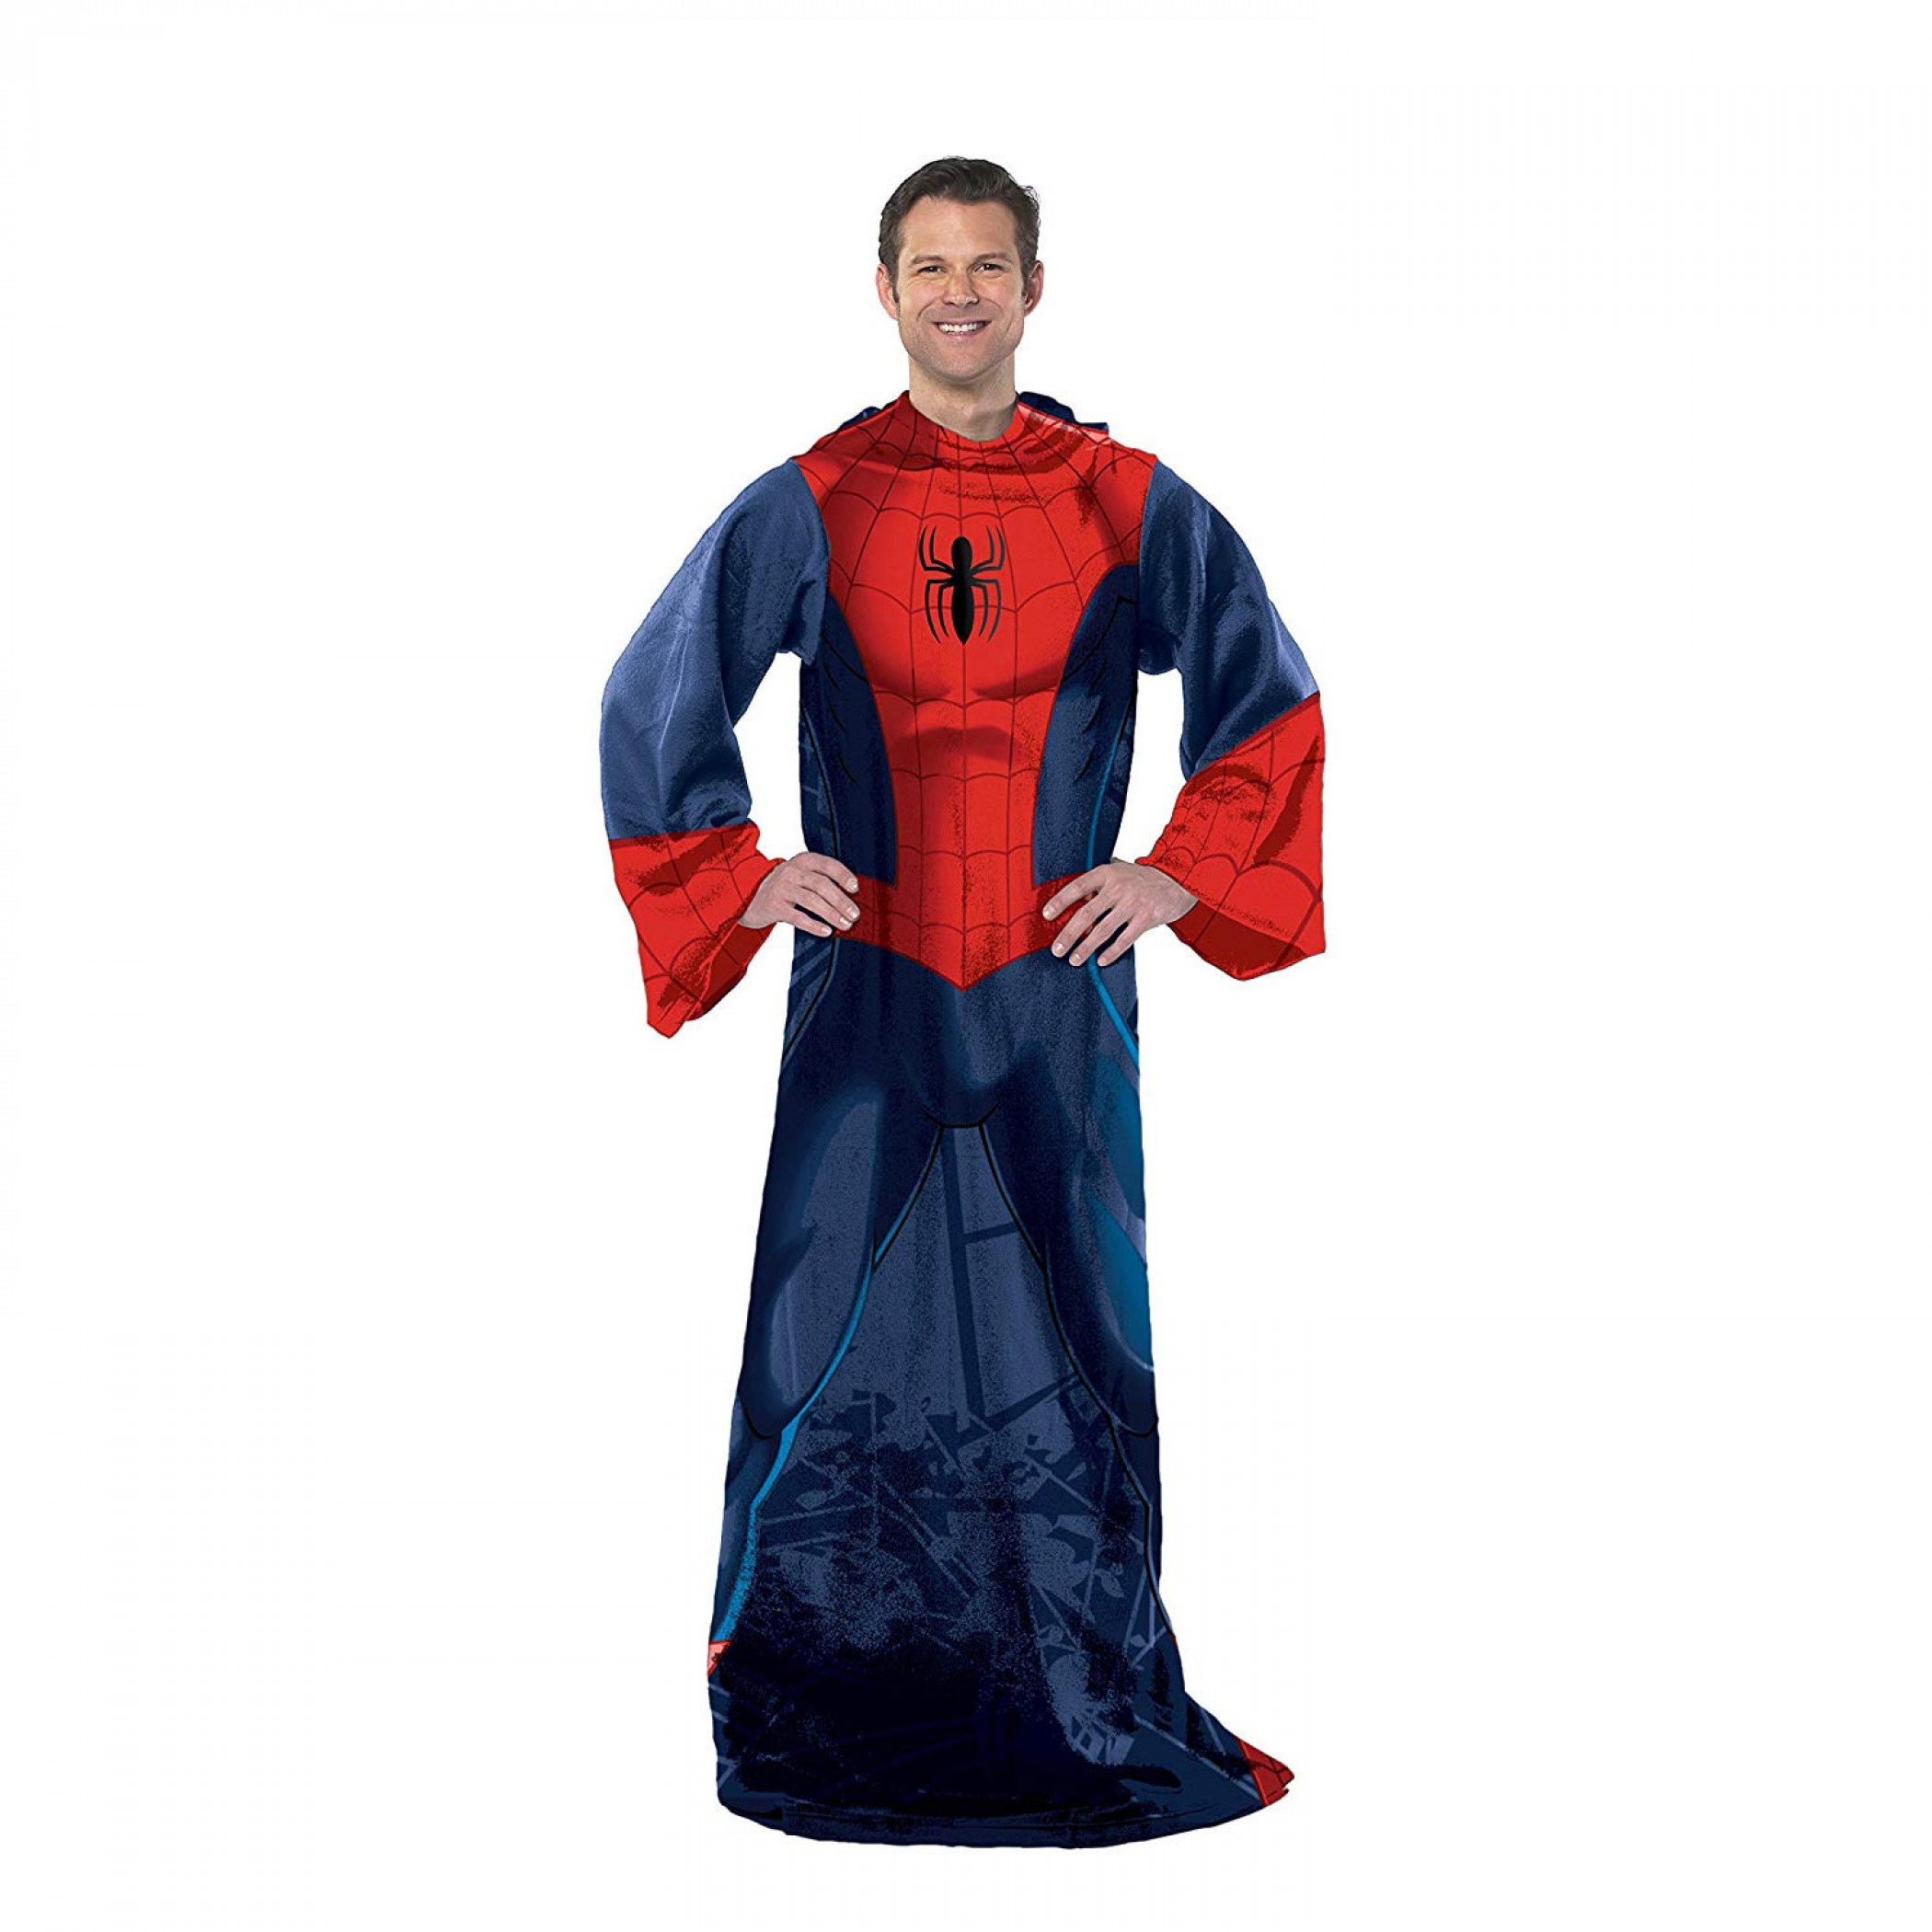 Spider-Man Costume Adult Blanket With Sleeves